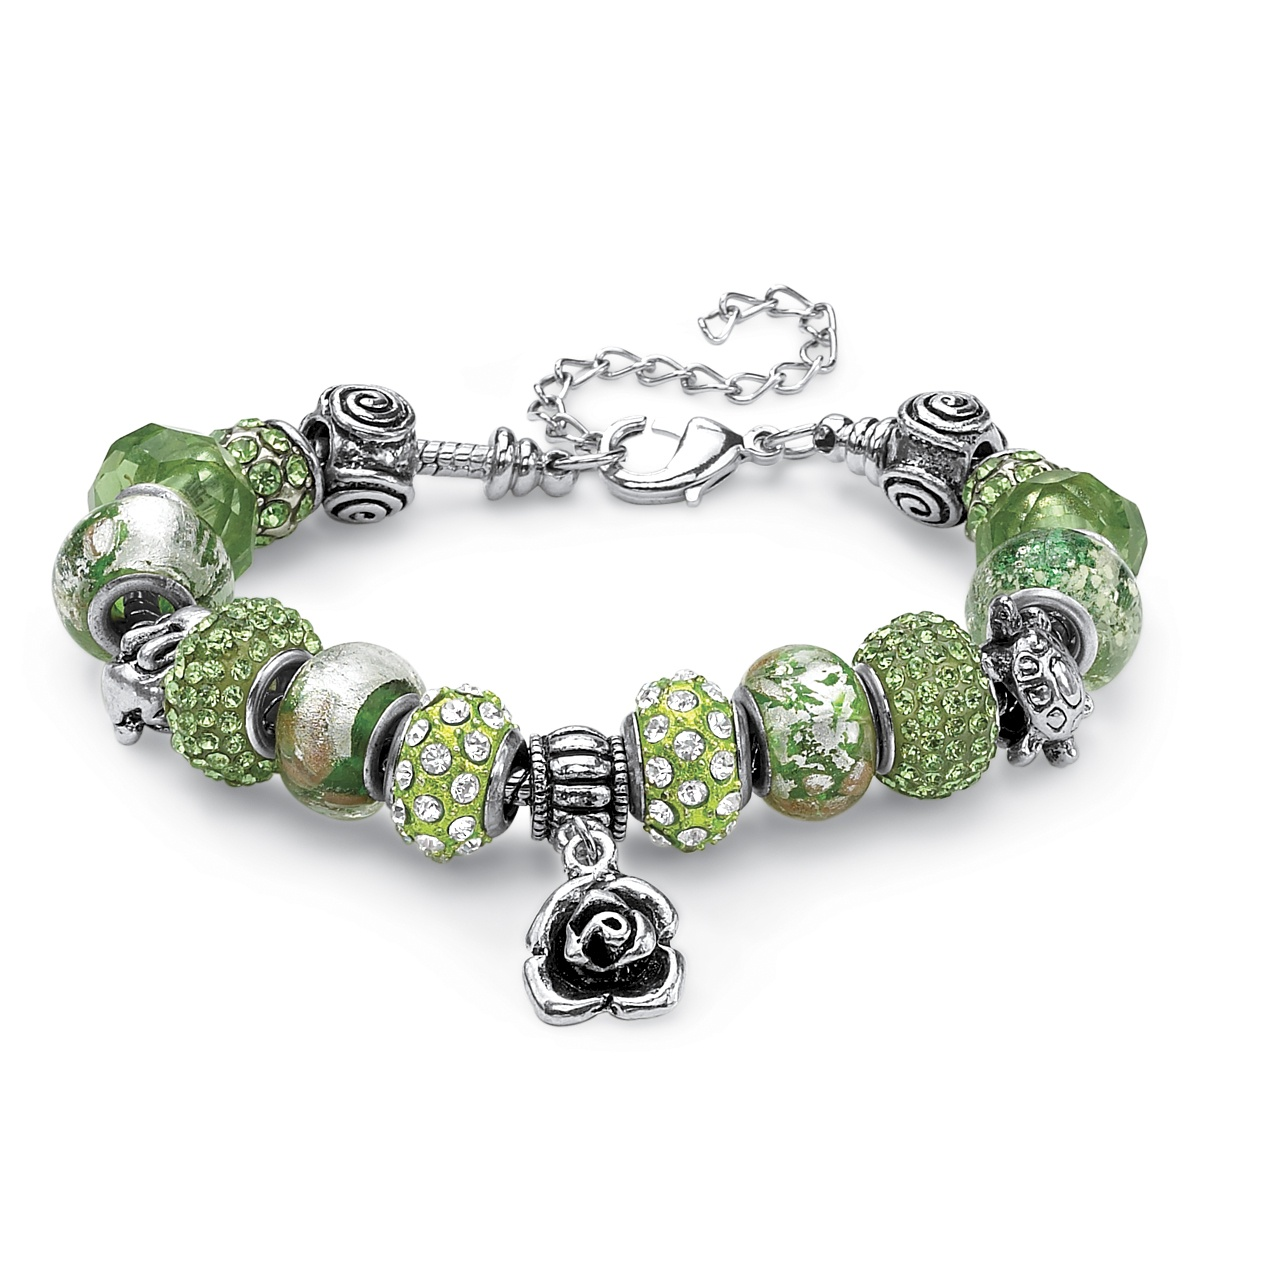 Green Crystal Bali-Style Beaded Charm and Spacer Bracelet in Silvertone 8""